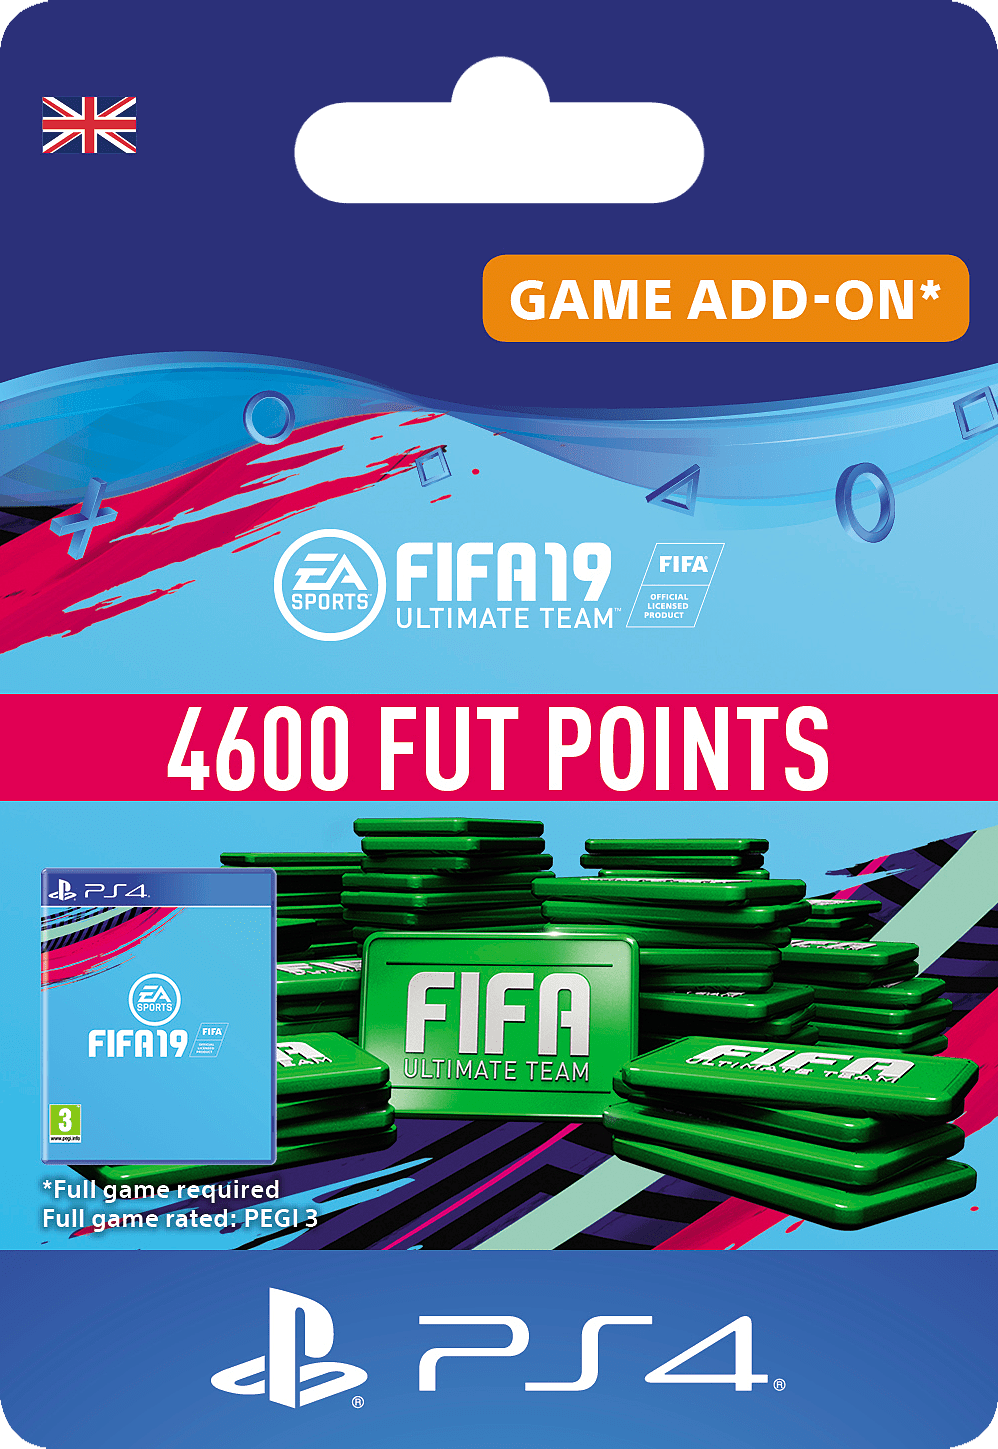 Buy FIFA 19: 4600 FUT Points on PlayStation 4 | GAME